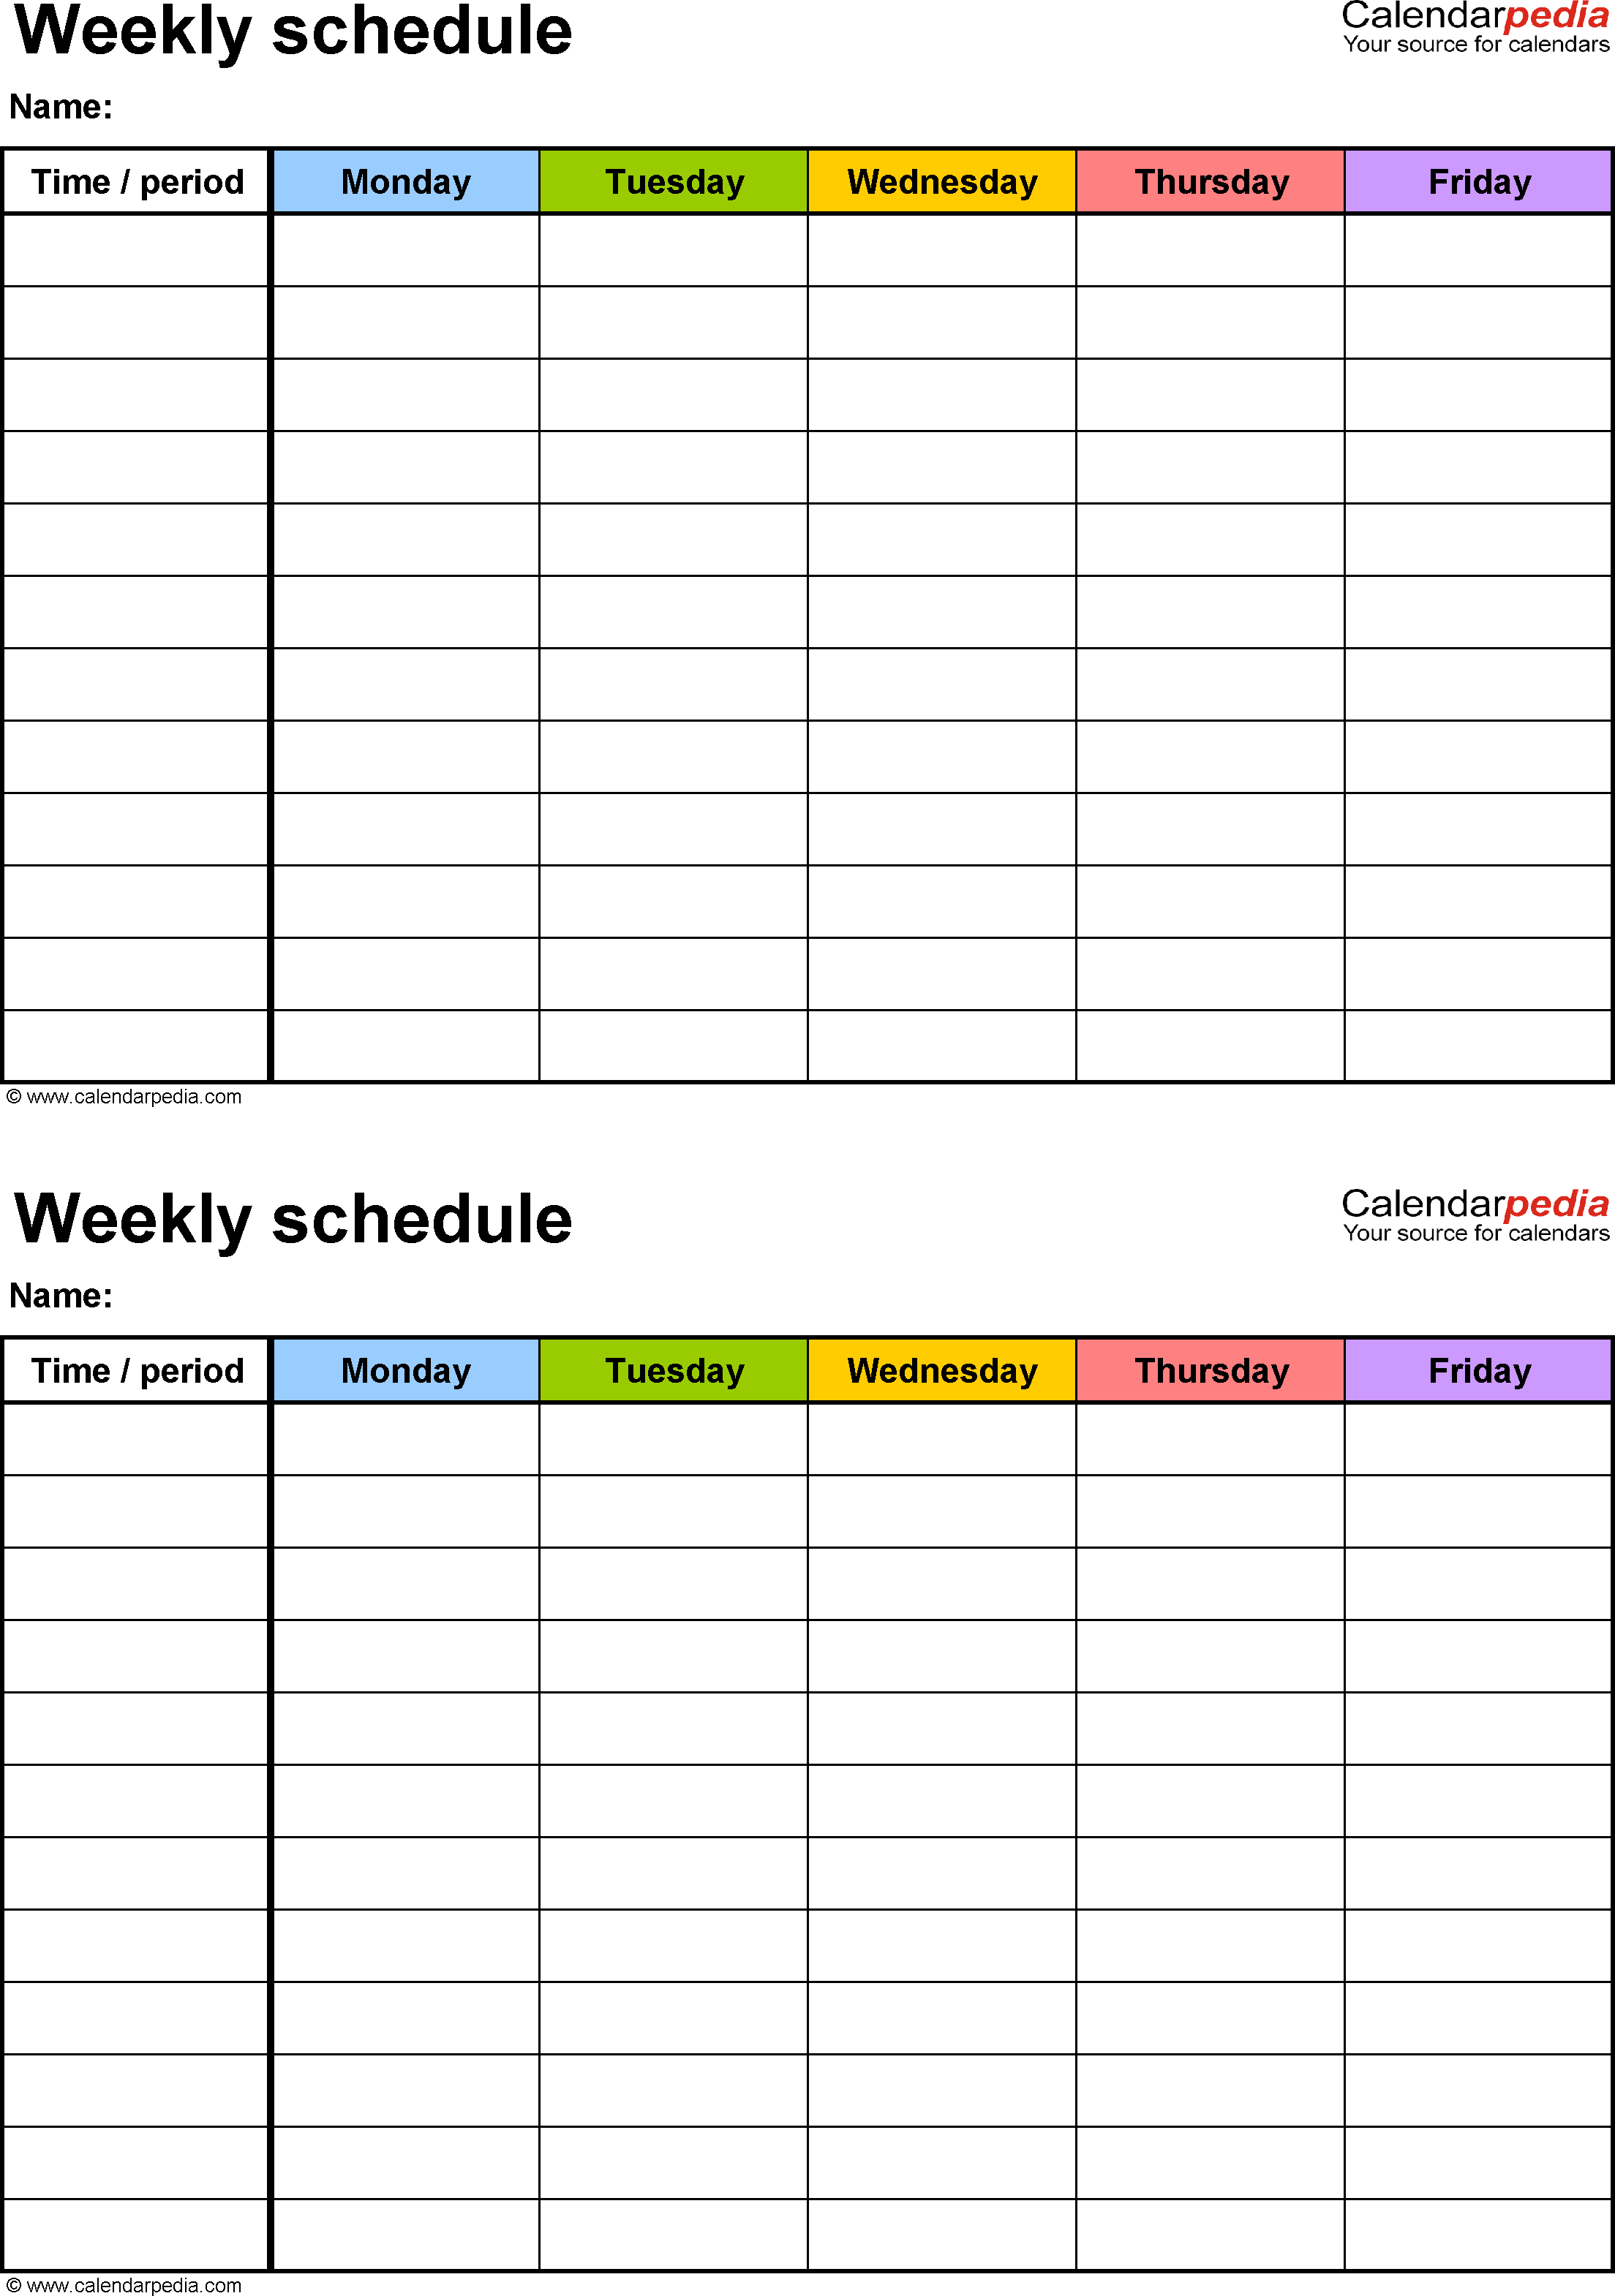 Weekly Schedule Template For Excel Version 3 2 Schedules On One Page Portrait Monday To